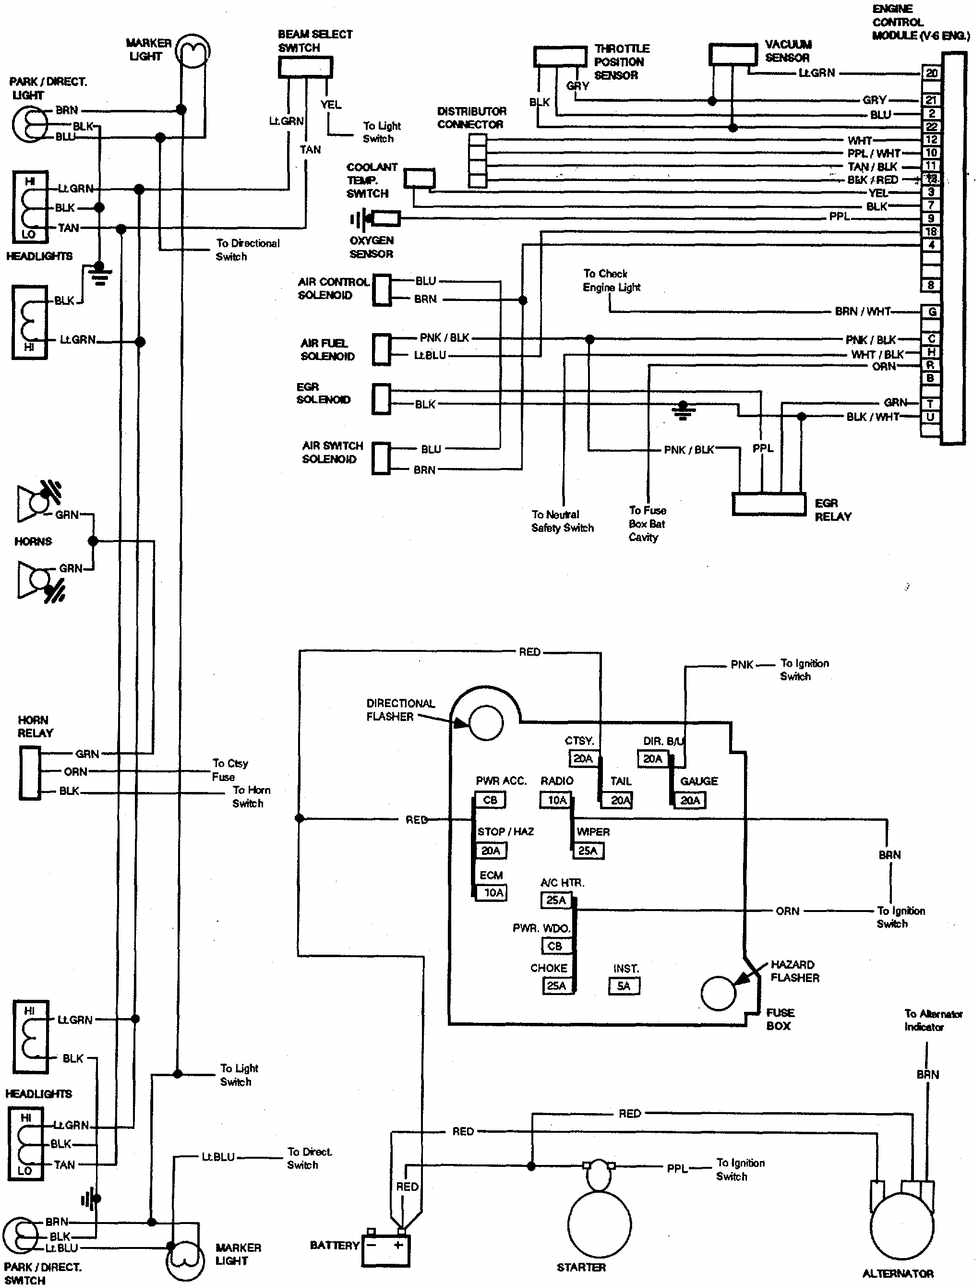 ShowAssembly besides 2001 Chevy 4 3l Engine Wiring Harness as well Toyota Corolla Wiring Diagram 1998 together with 94 Gmc Ke Light Relay Wiring Diagram Photos For likewise 88 Corvette Wiring Diagrams. on 1996 chevy 1500 ecm wiring diagram